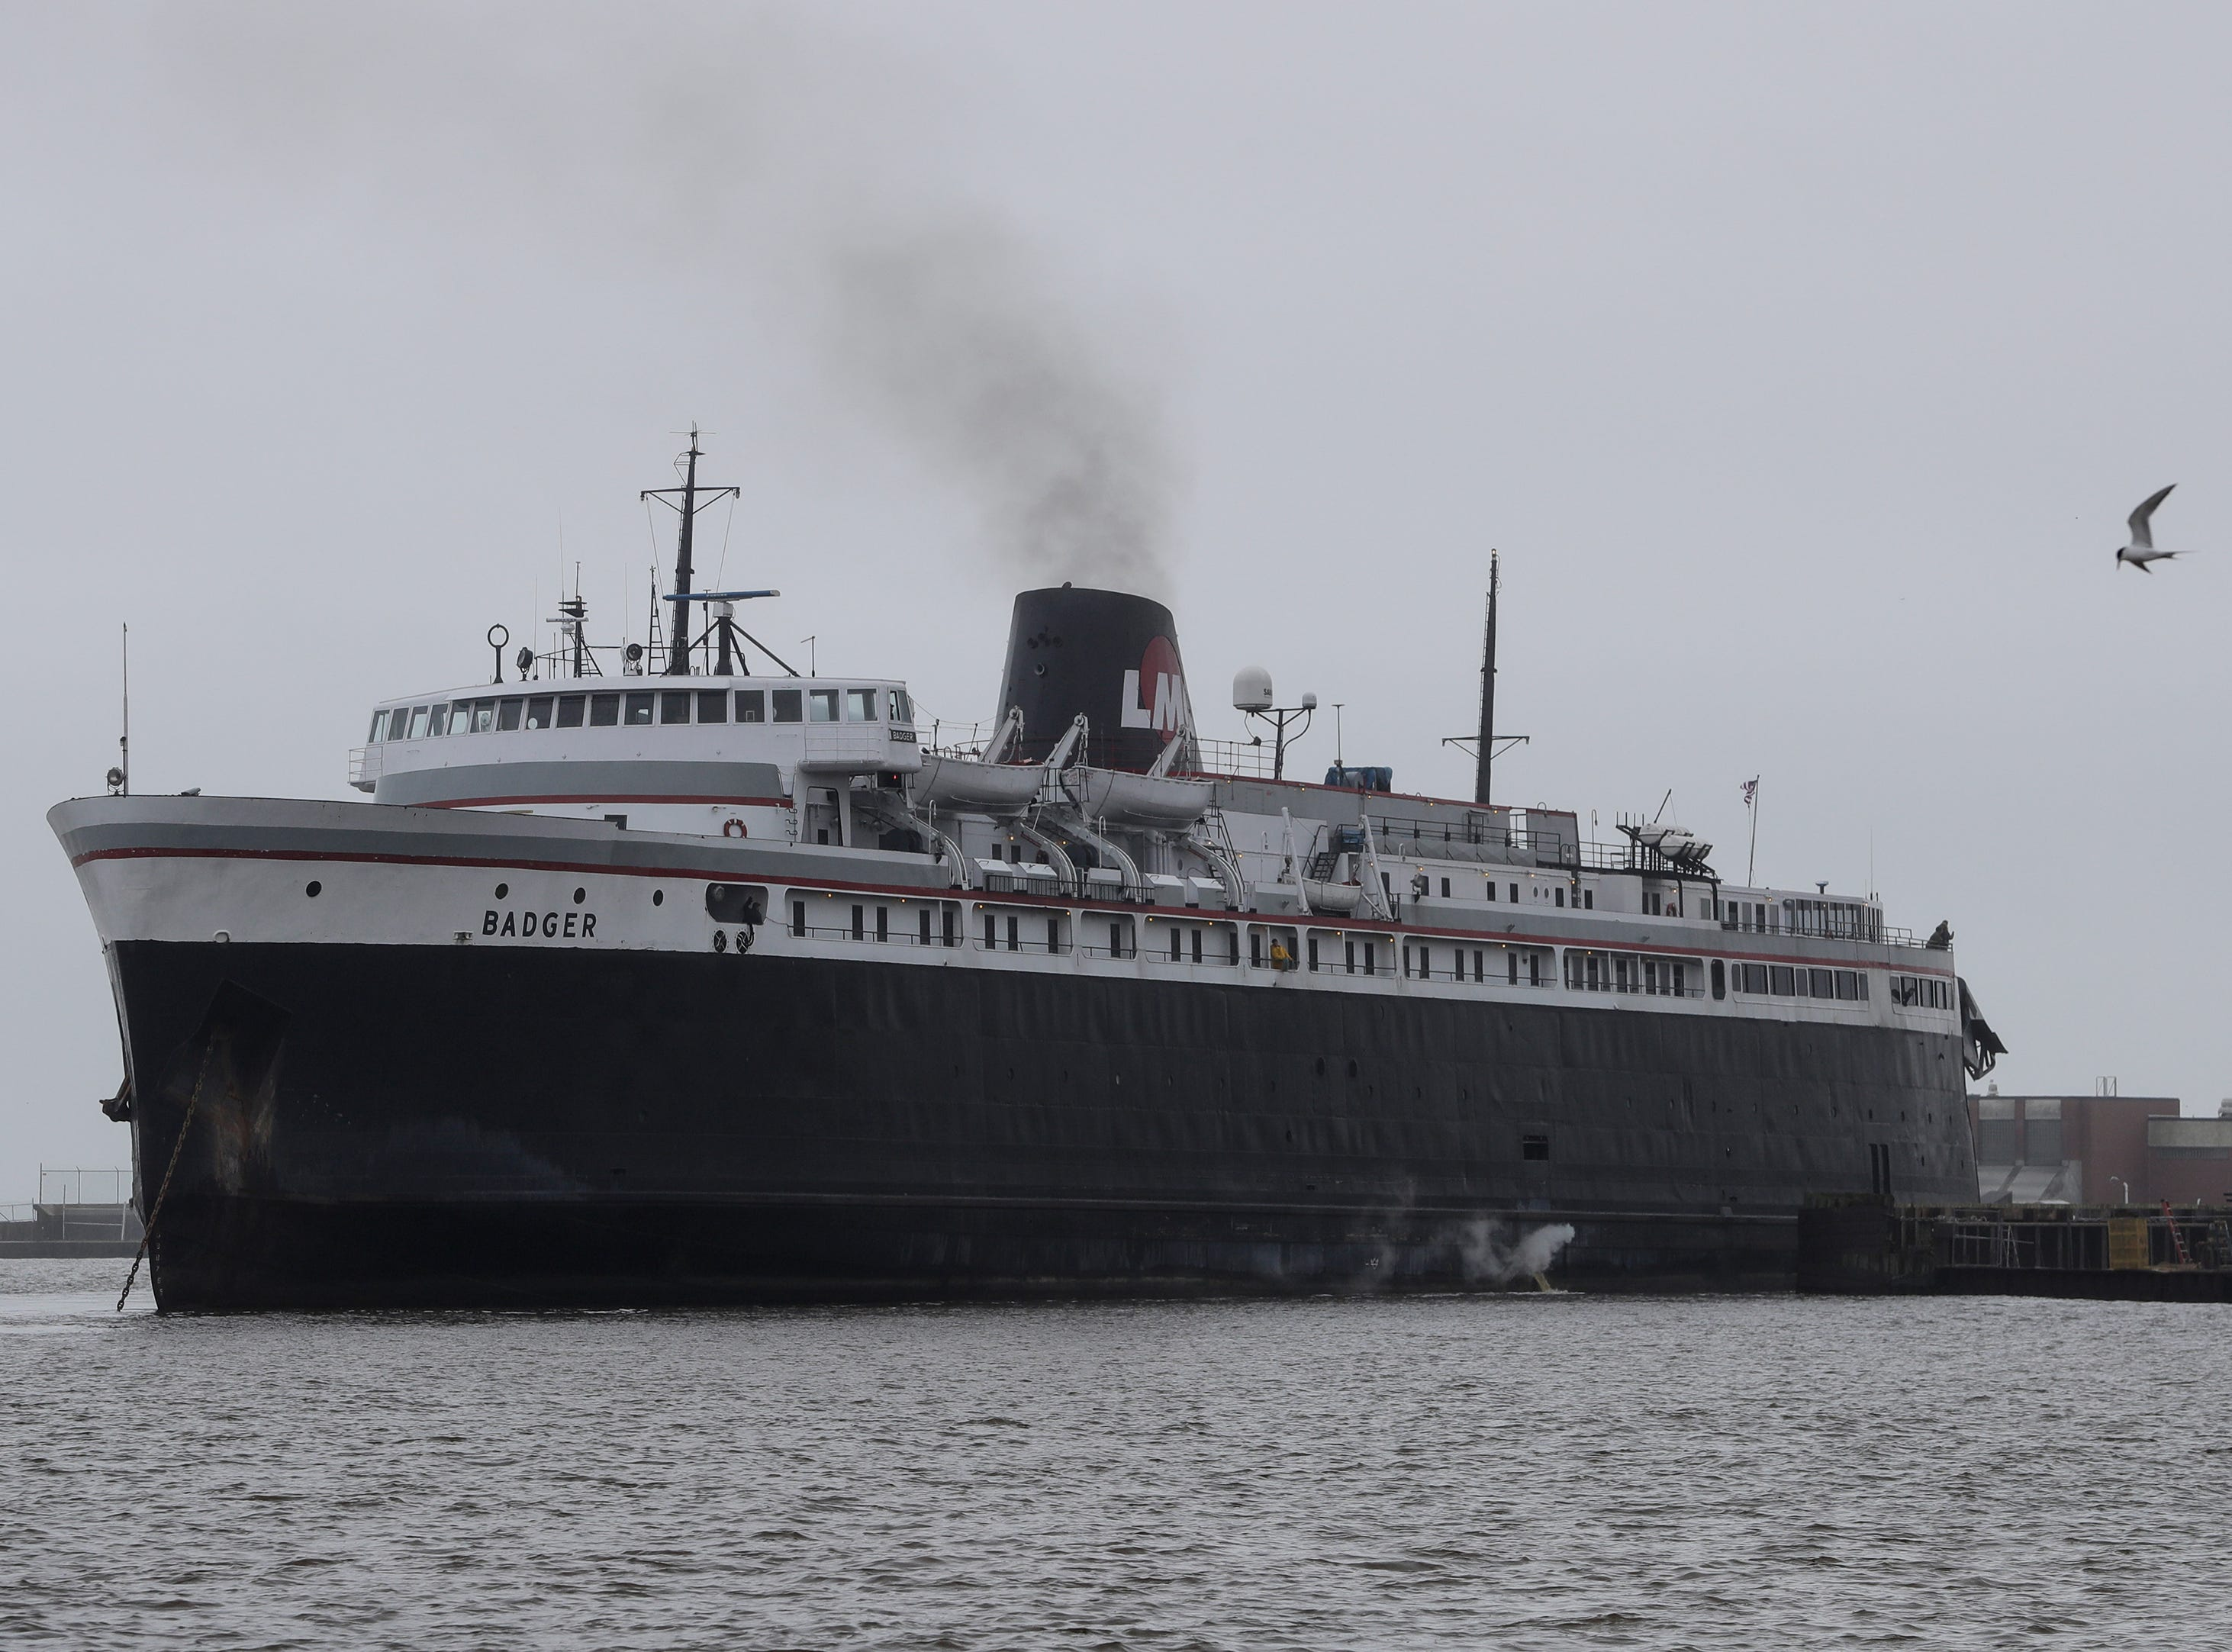 The S.S. Badger backs into the newly constructed dock and wall for the first time before its first sail Thursday, May 9, 2019, in Manitowoc, Wis. Joshua Clark/USA TODAY NETWORK-Wisconsin